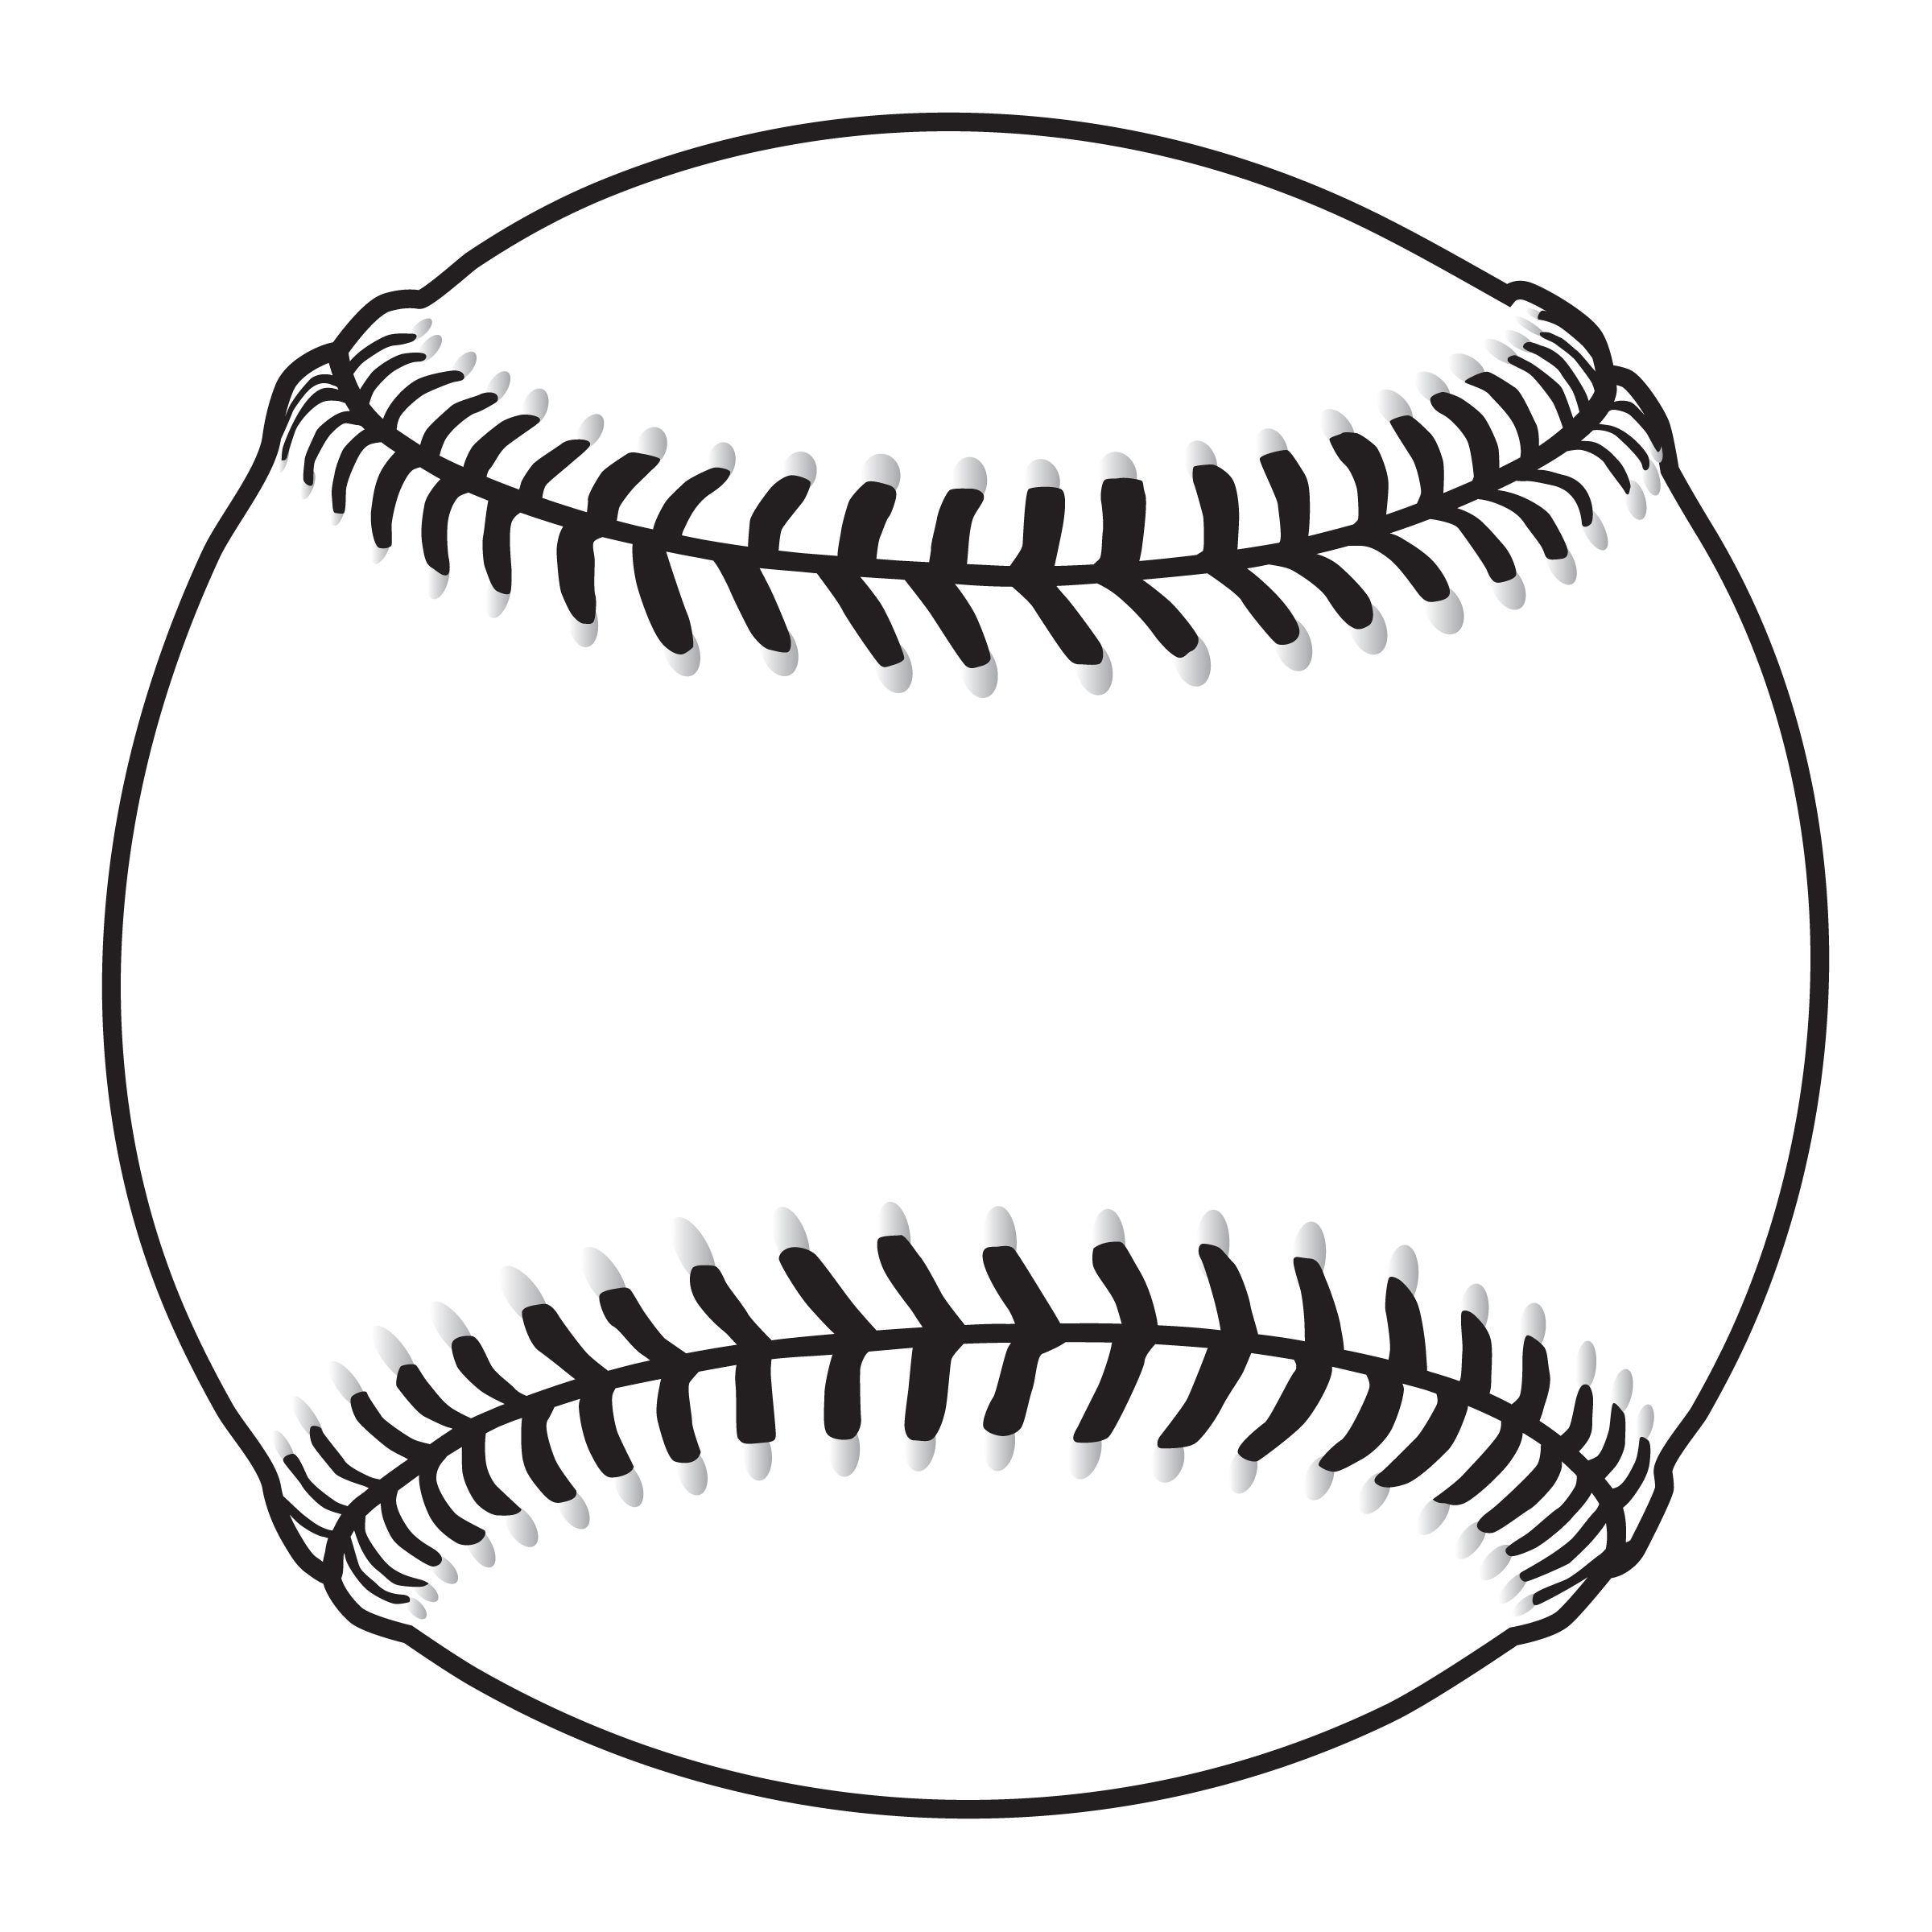 St louis logo cliparthut. Softball clipart vintage